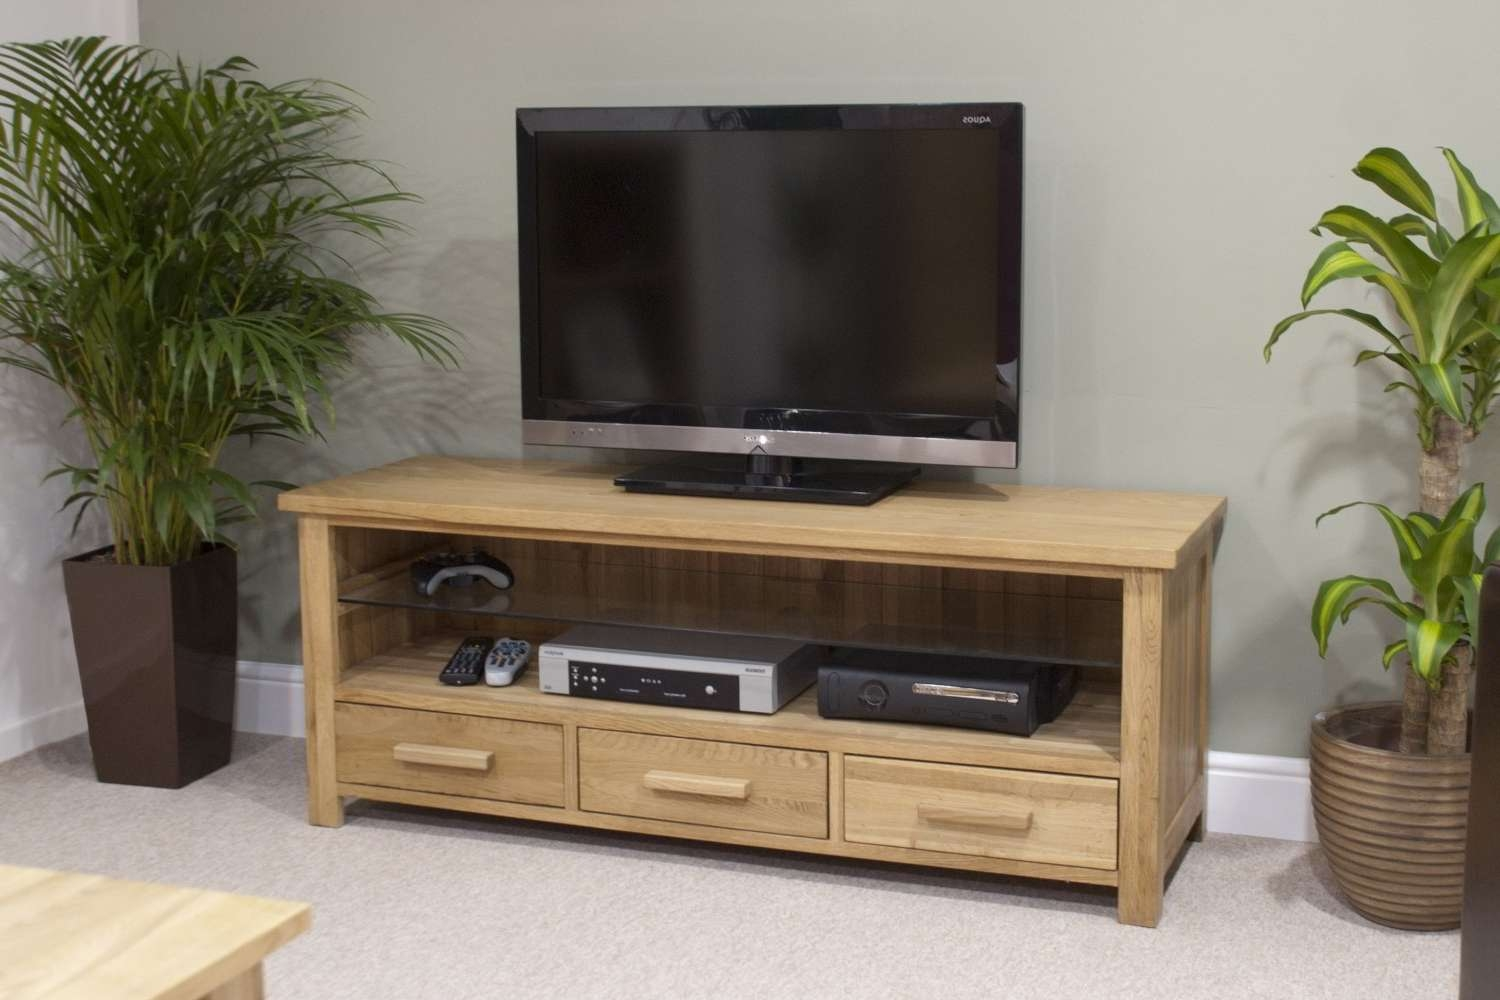 Eton Solid Oak Living Room Furniture Widescreen Tv Cabinet Stand Within Oak Furniture Tv Stands (Gallery 3 of 20)